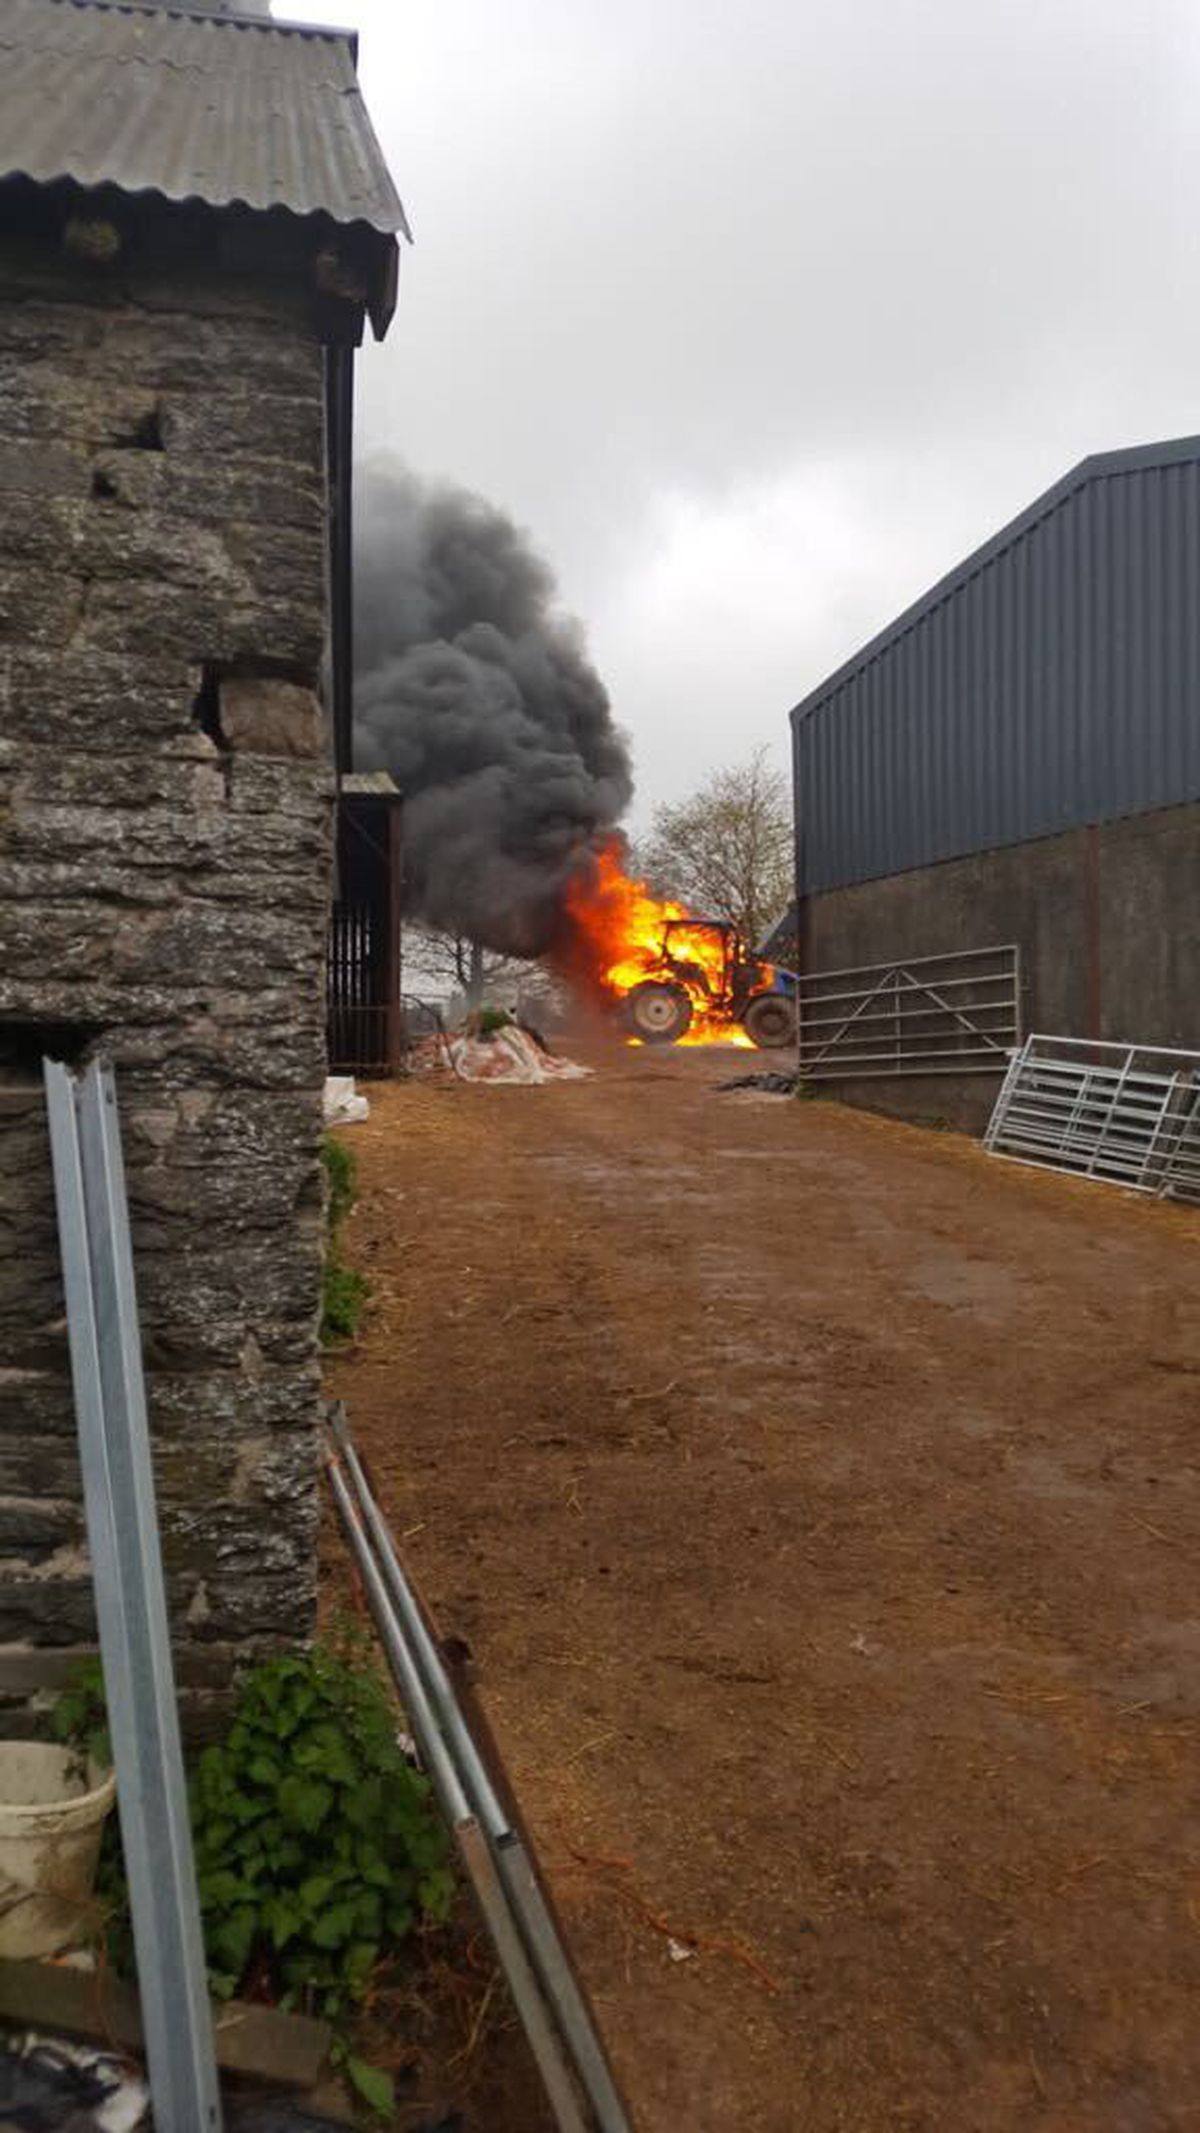 A tractor went up in flames at a Newcastle farm. Pic: @SFRS_Clun